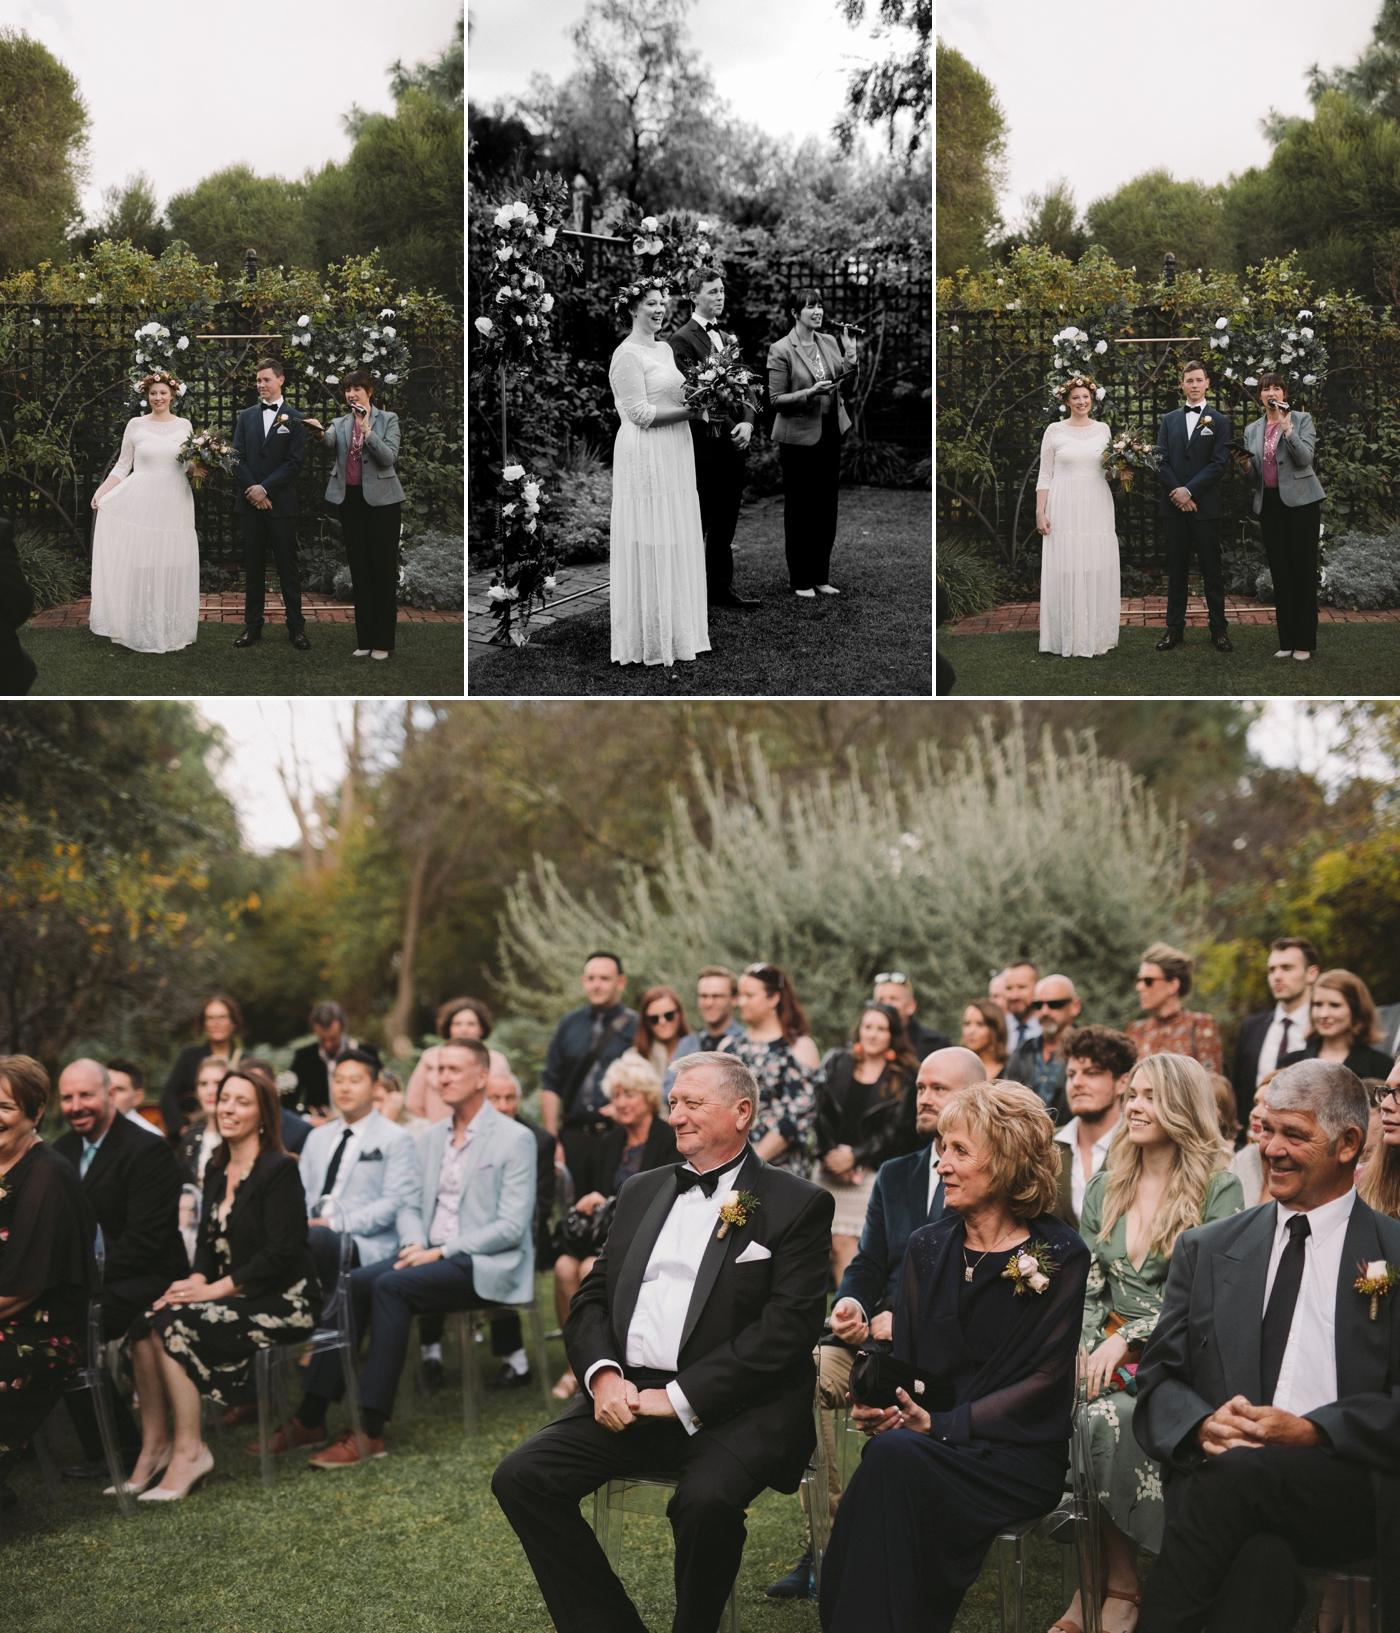 Jo & Aaron - Natural Wedding Photography in Adelaide - Beautiful, modern wedding photographer - Al Ru Farm Wedding Photography - Katherine Schultz_0012.jpg